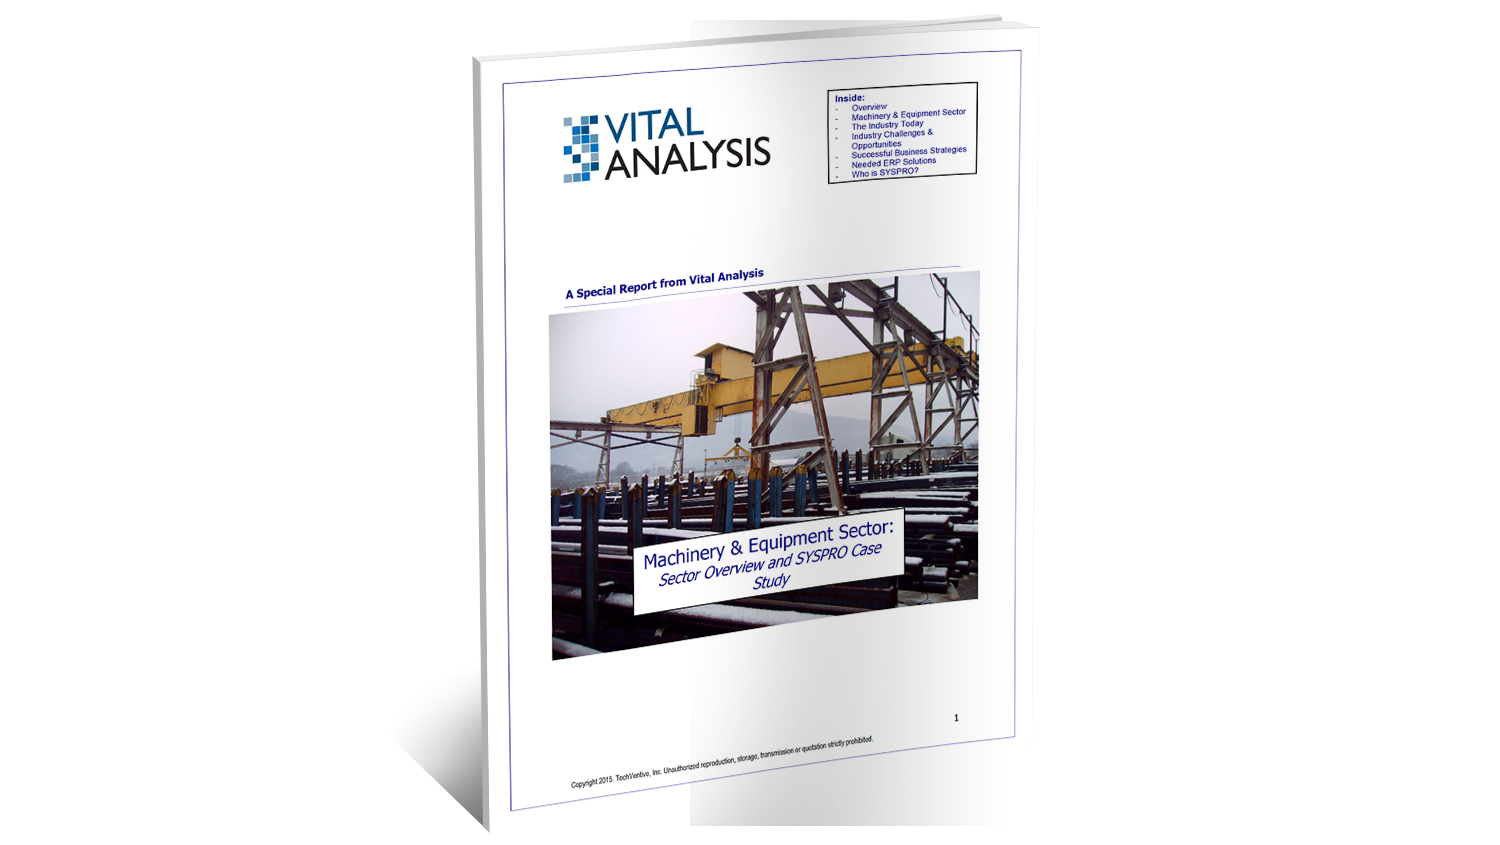 Techventive SYSPRO ERP for Machinery Analyst Report